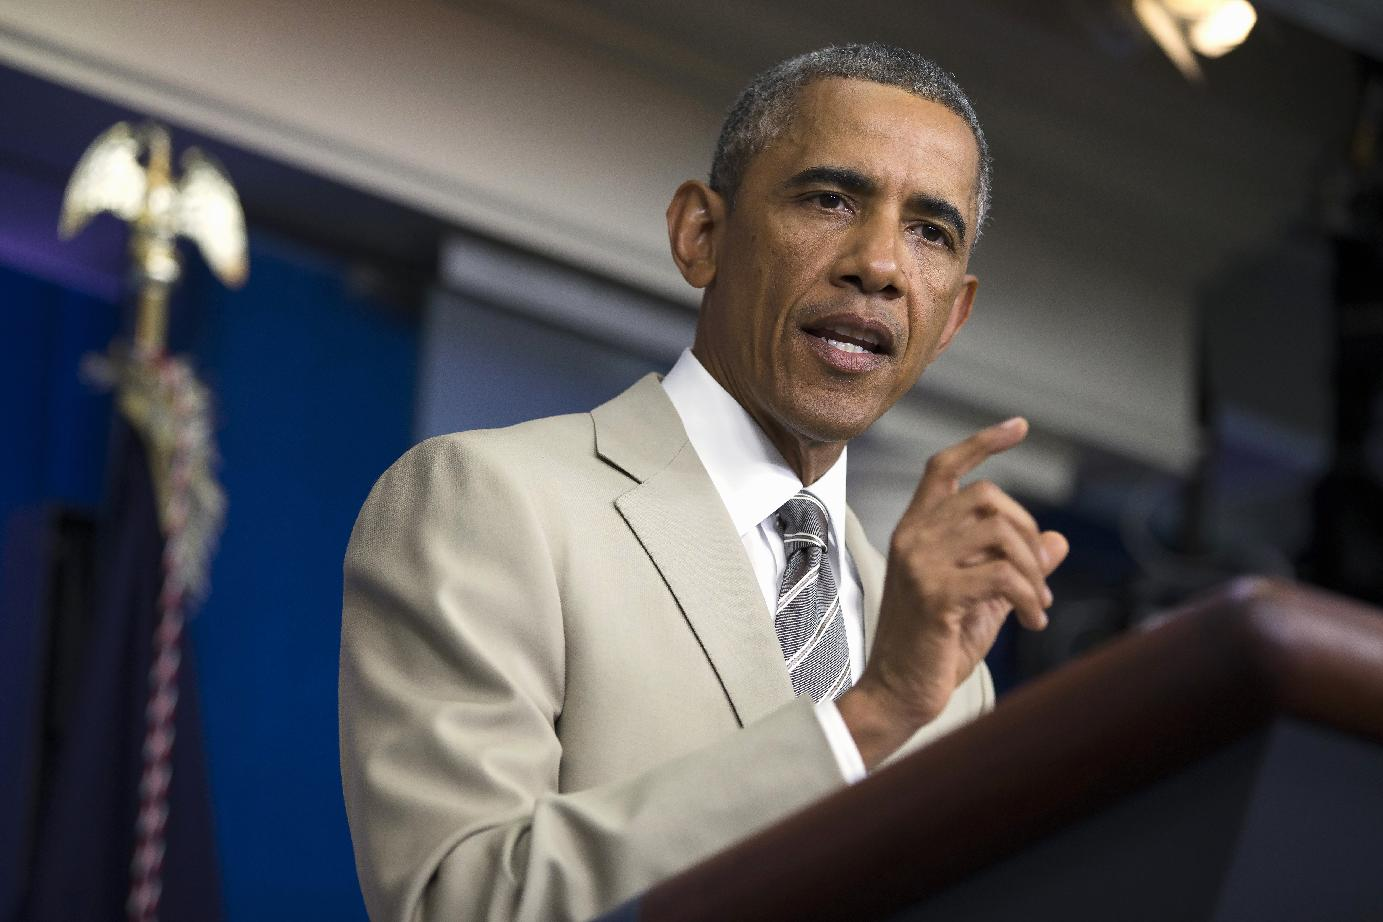 Obama seeking allies for fight against extremists